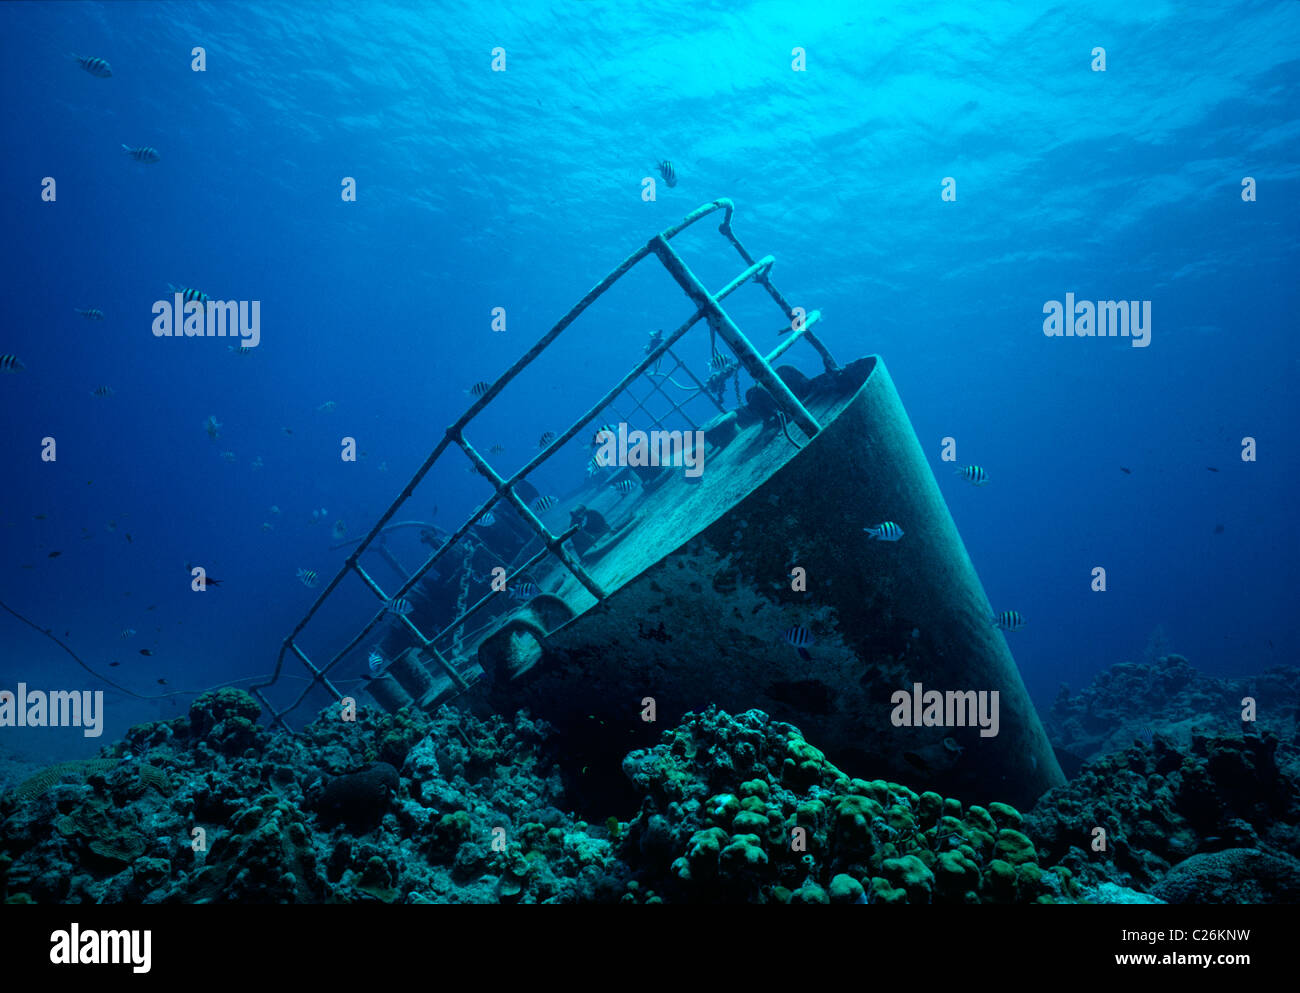 Shipwreck of the small freighter 'Ora Verde'. Grand Cayman Island, Caribbean Sea - Stock Image